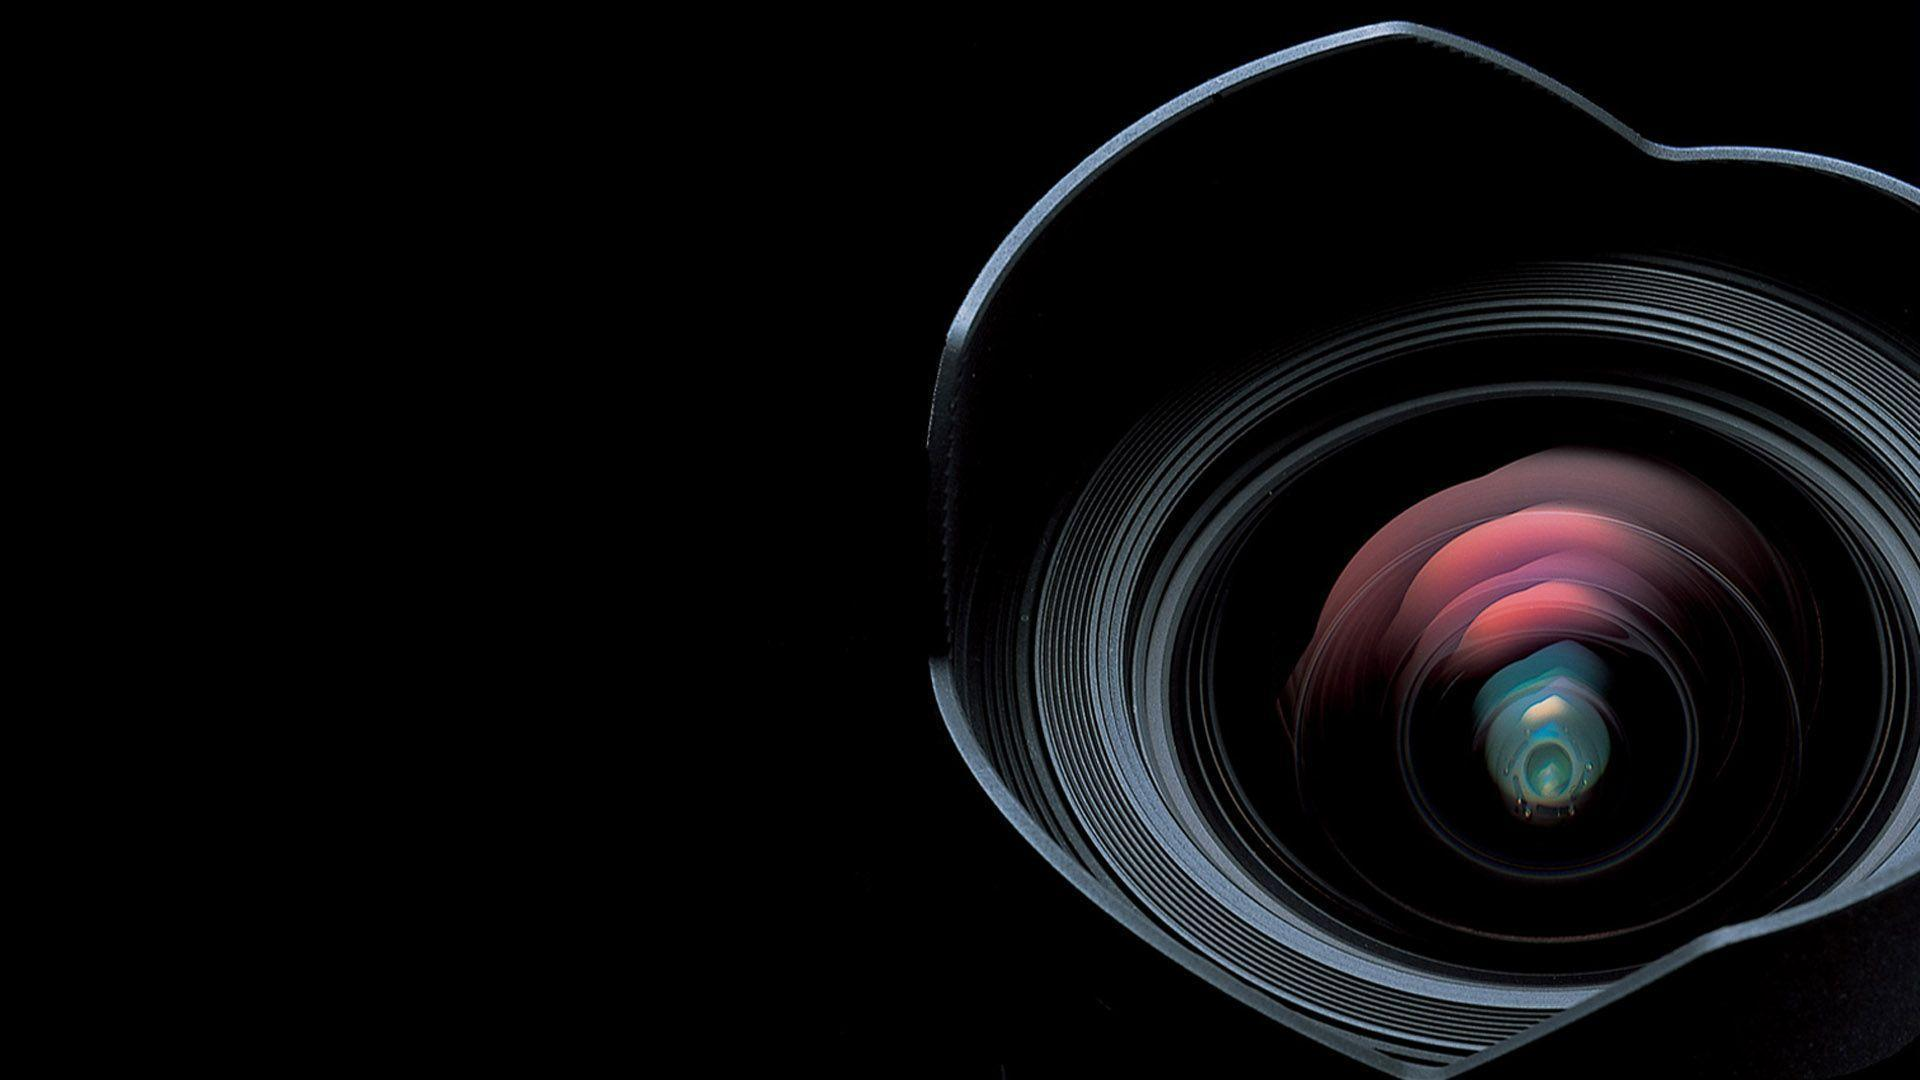 18 Excellent HD Camera Lens Wallpapers - HDWallSource.com